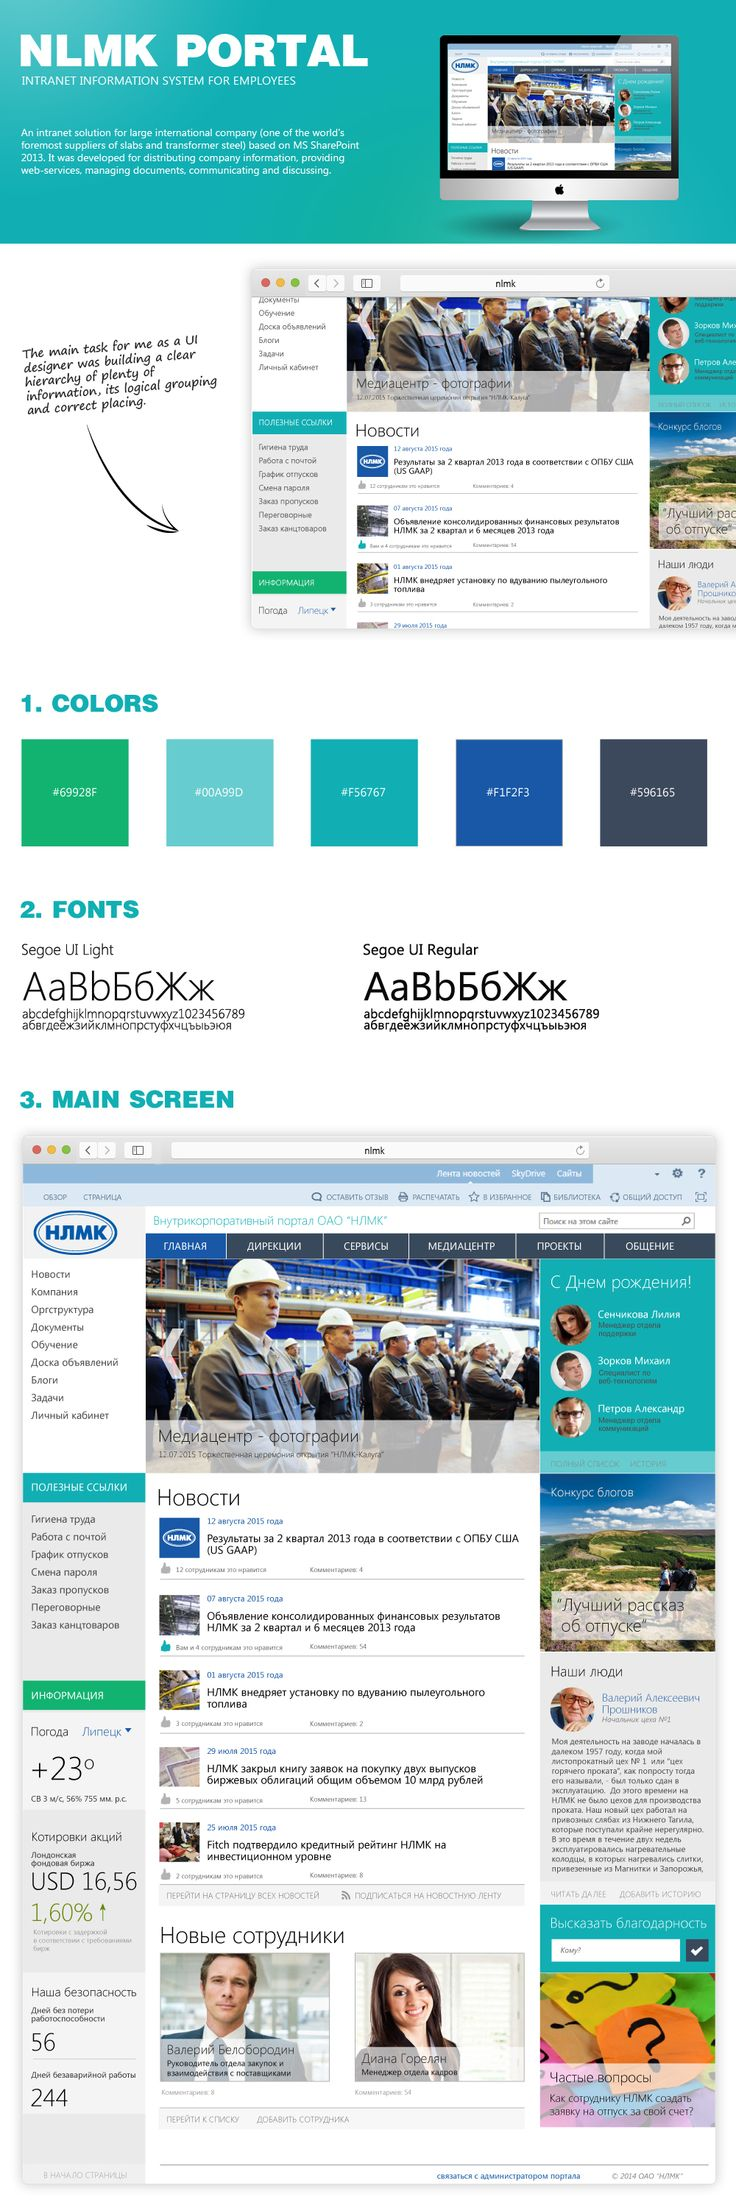 Sharepoint site design ideas - An Intranet Portal For A Large Company One Of The World S Foremost Suppliers Of Slabs